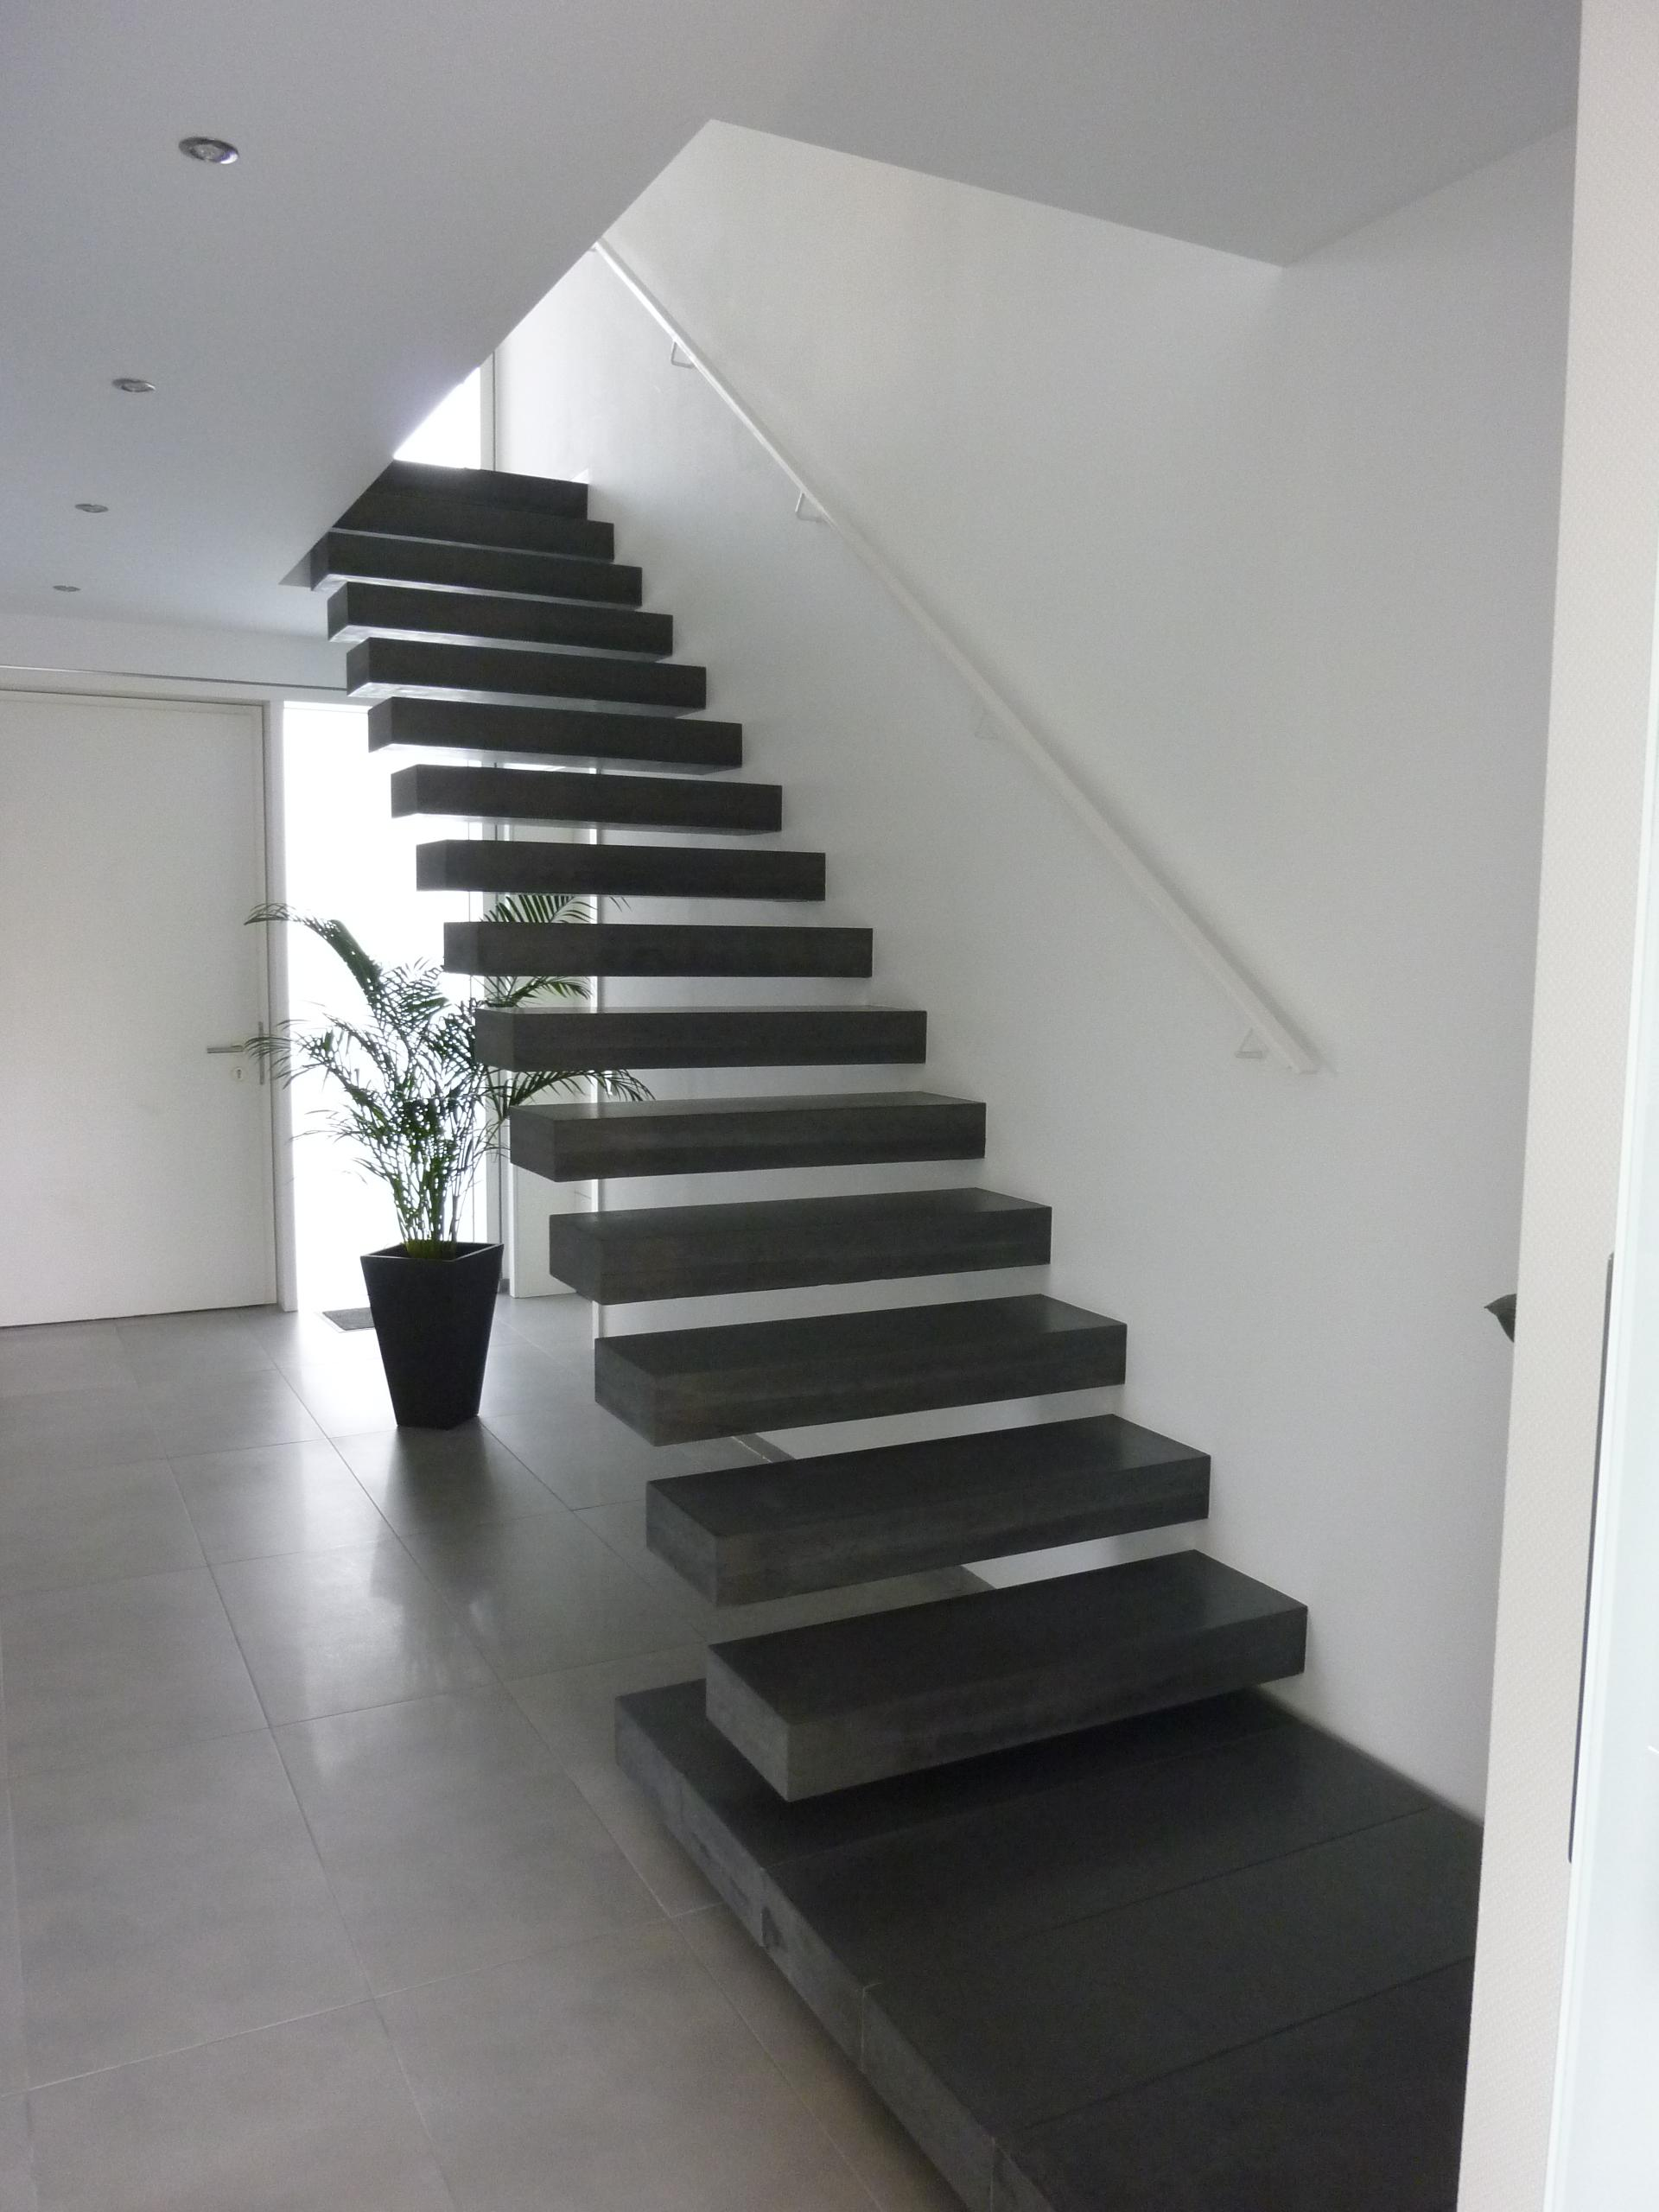 betontreppe verkleiden vinyl cool stunning with treppe verkleiden with betontreppe verkleiden. Black Bedroom Furniture Sets. Home Design Ideas